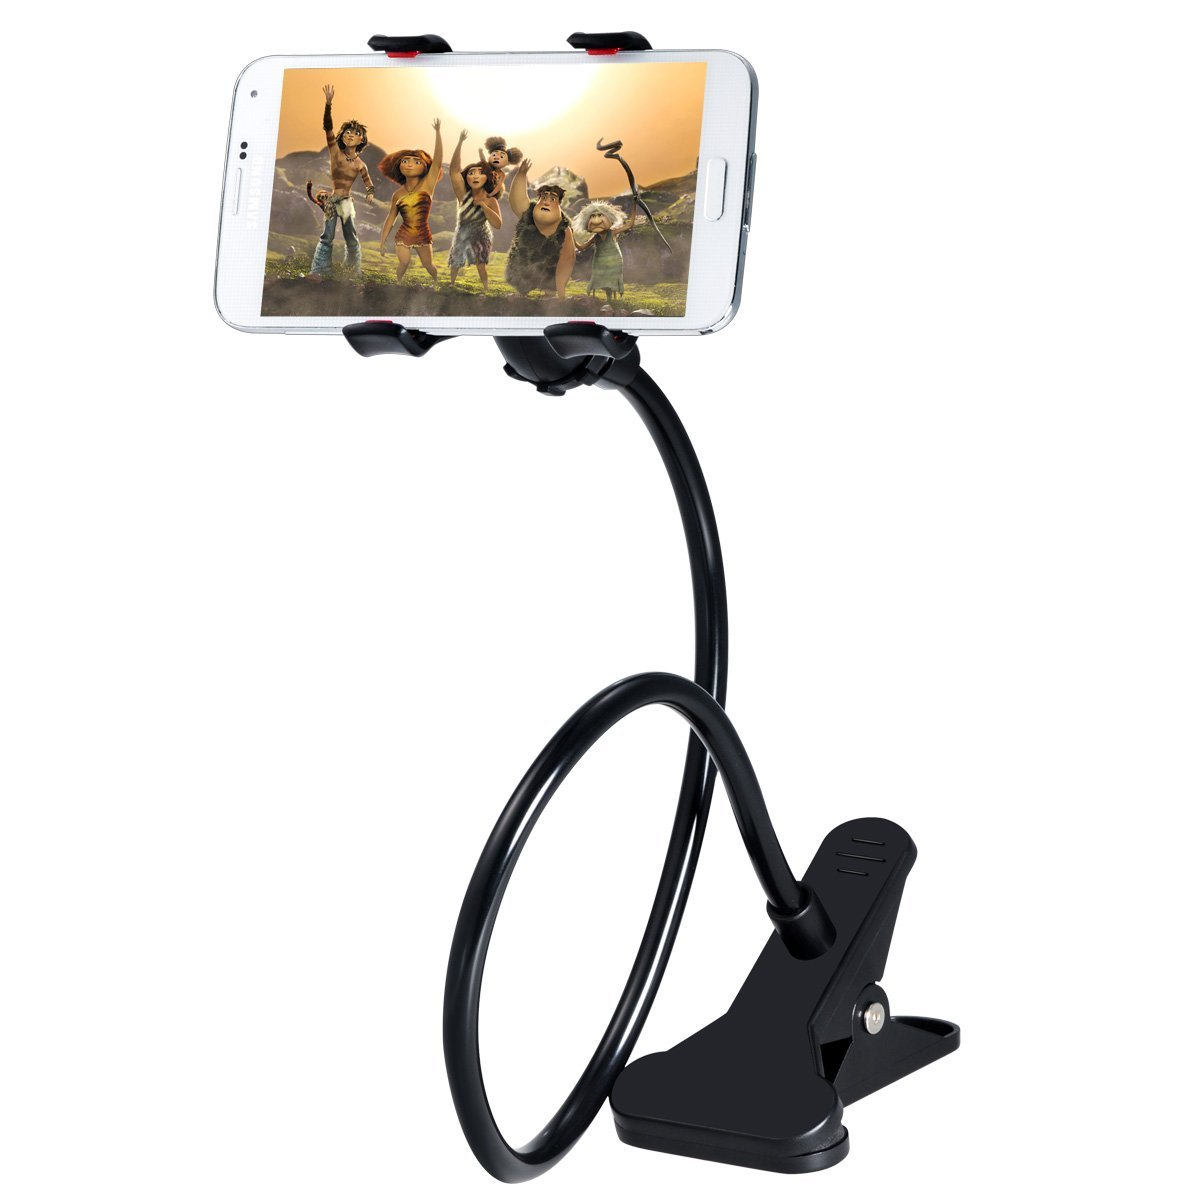 BattlestarFlexible 360 Degree Snake Style Stand Long Lazy Stand Foldable Mobile Holder Stand, Cell Phone, Flexible Long Arms Clip Mount Mix colour CodeLazyX35